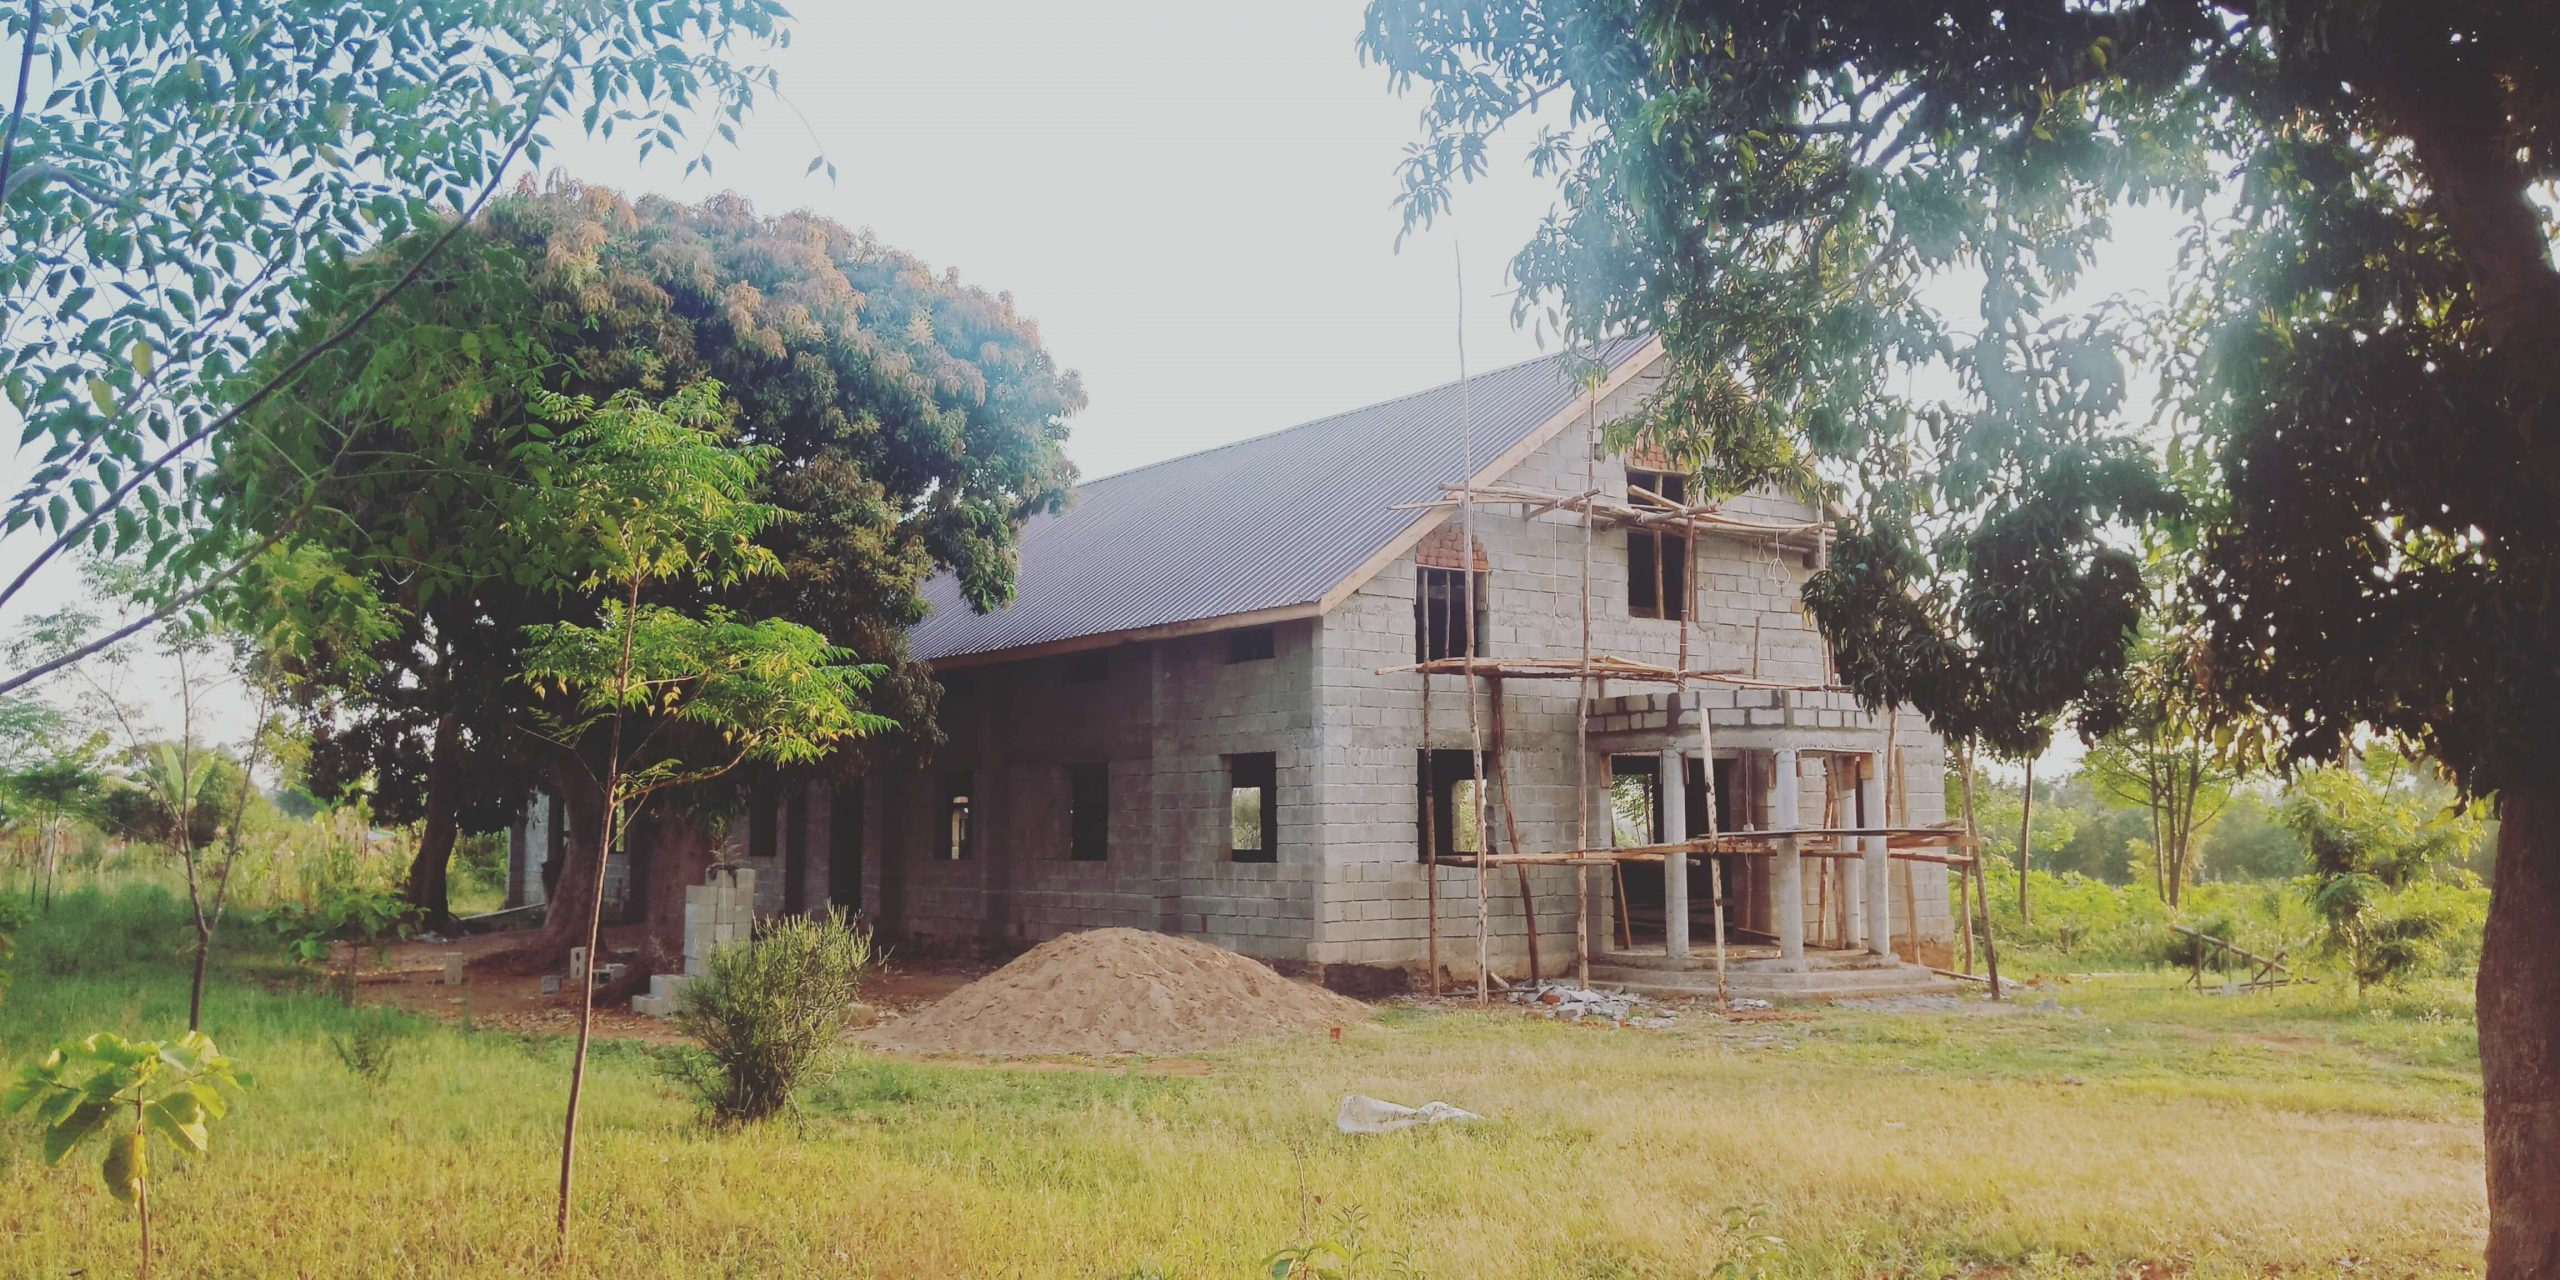 Uganda - Another shot of the church\\\\'s progress